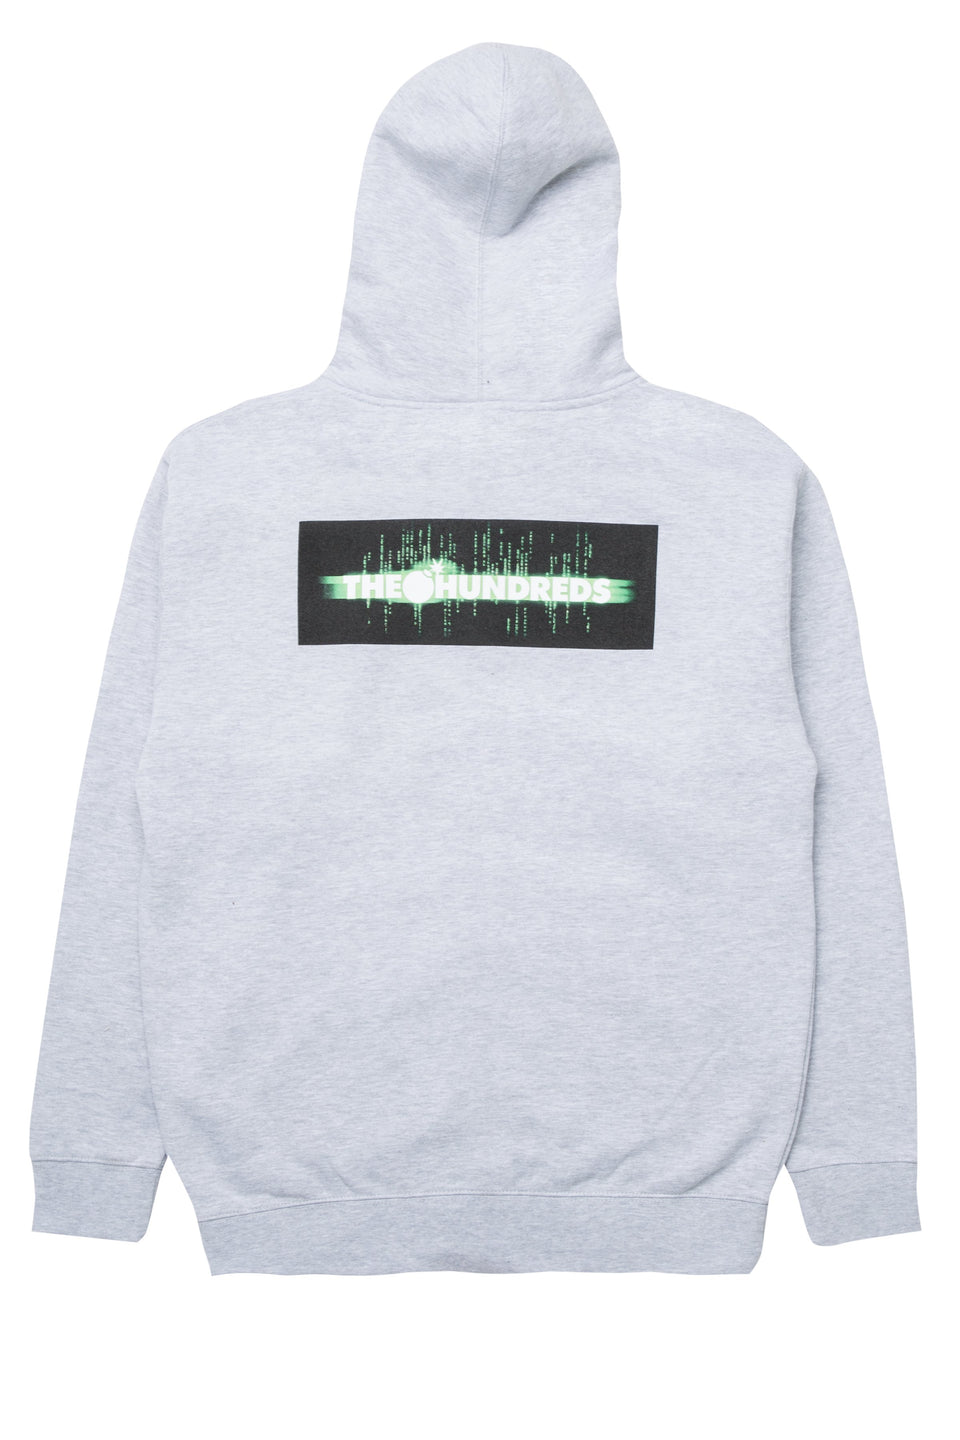 Pills Zip-Up Hoodie